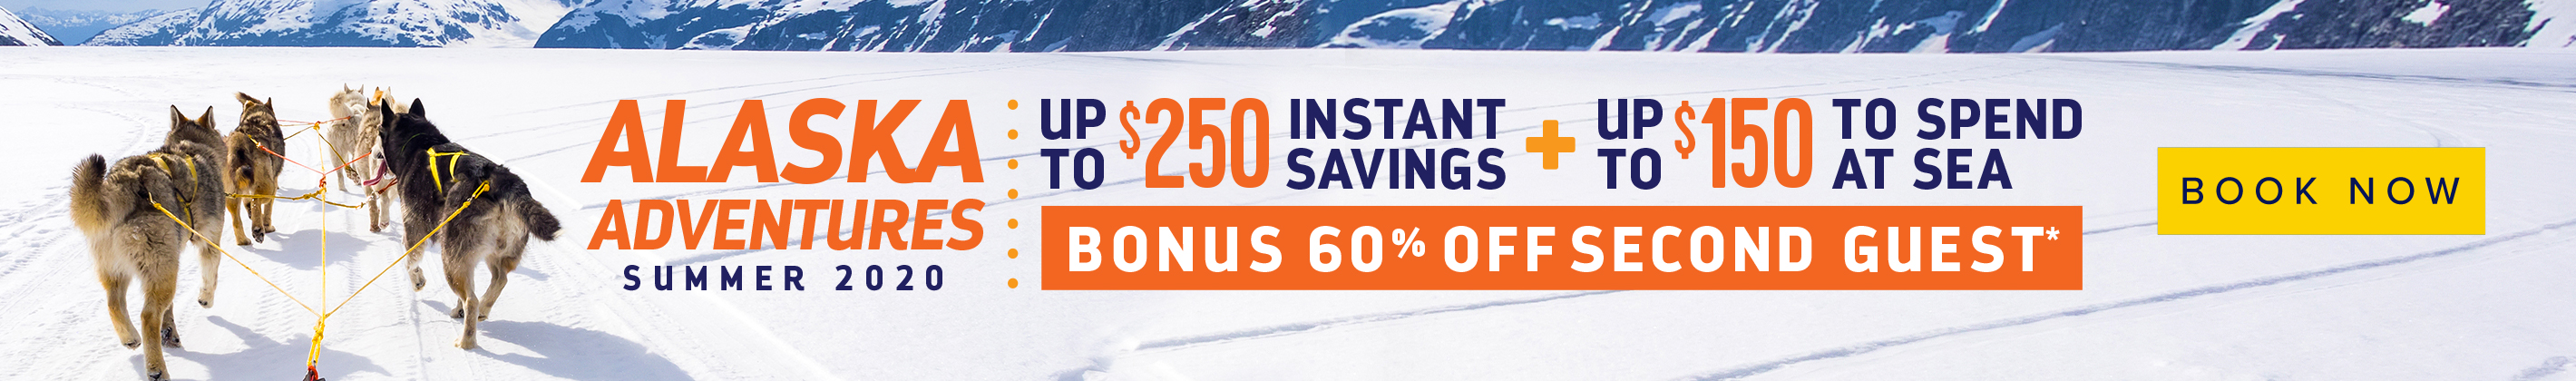 Up to $150 Instant Savings